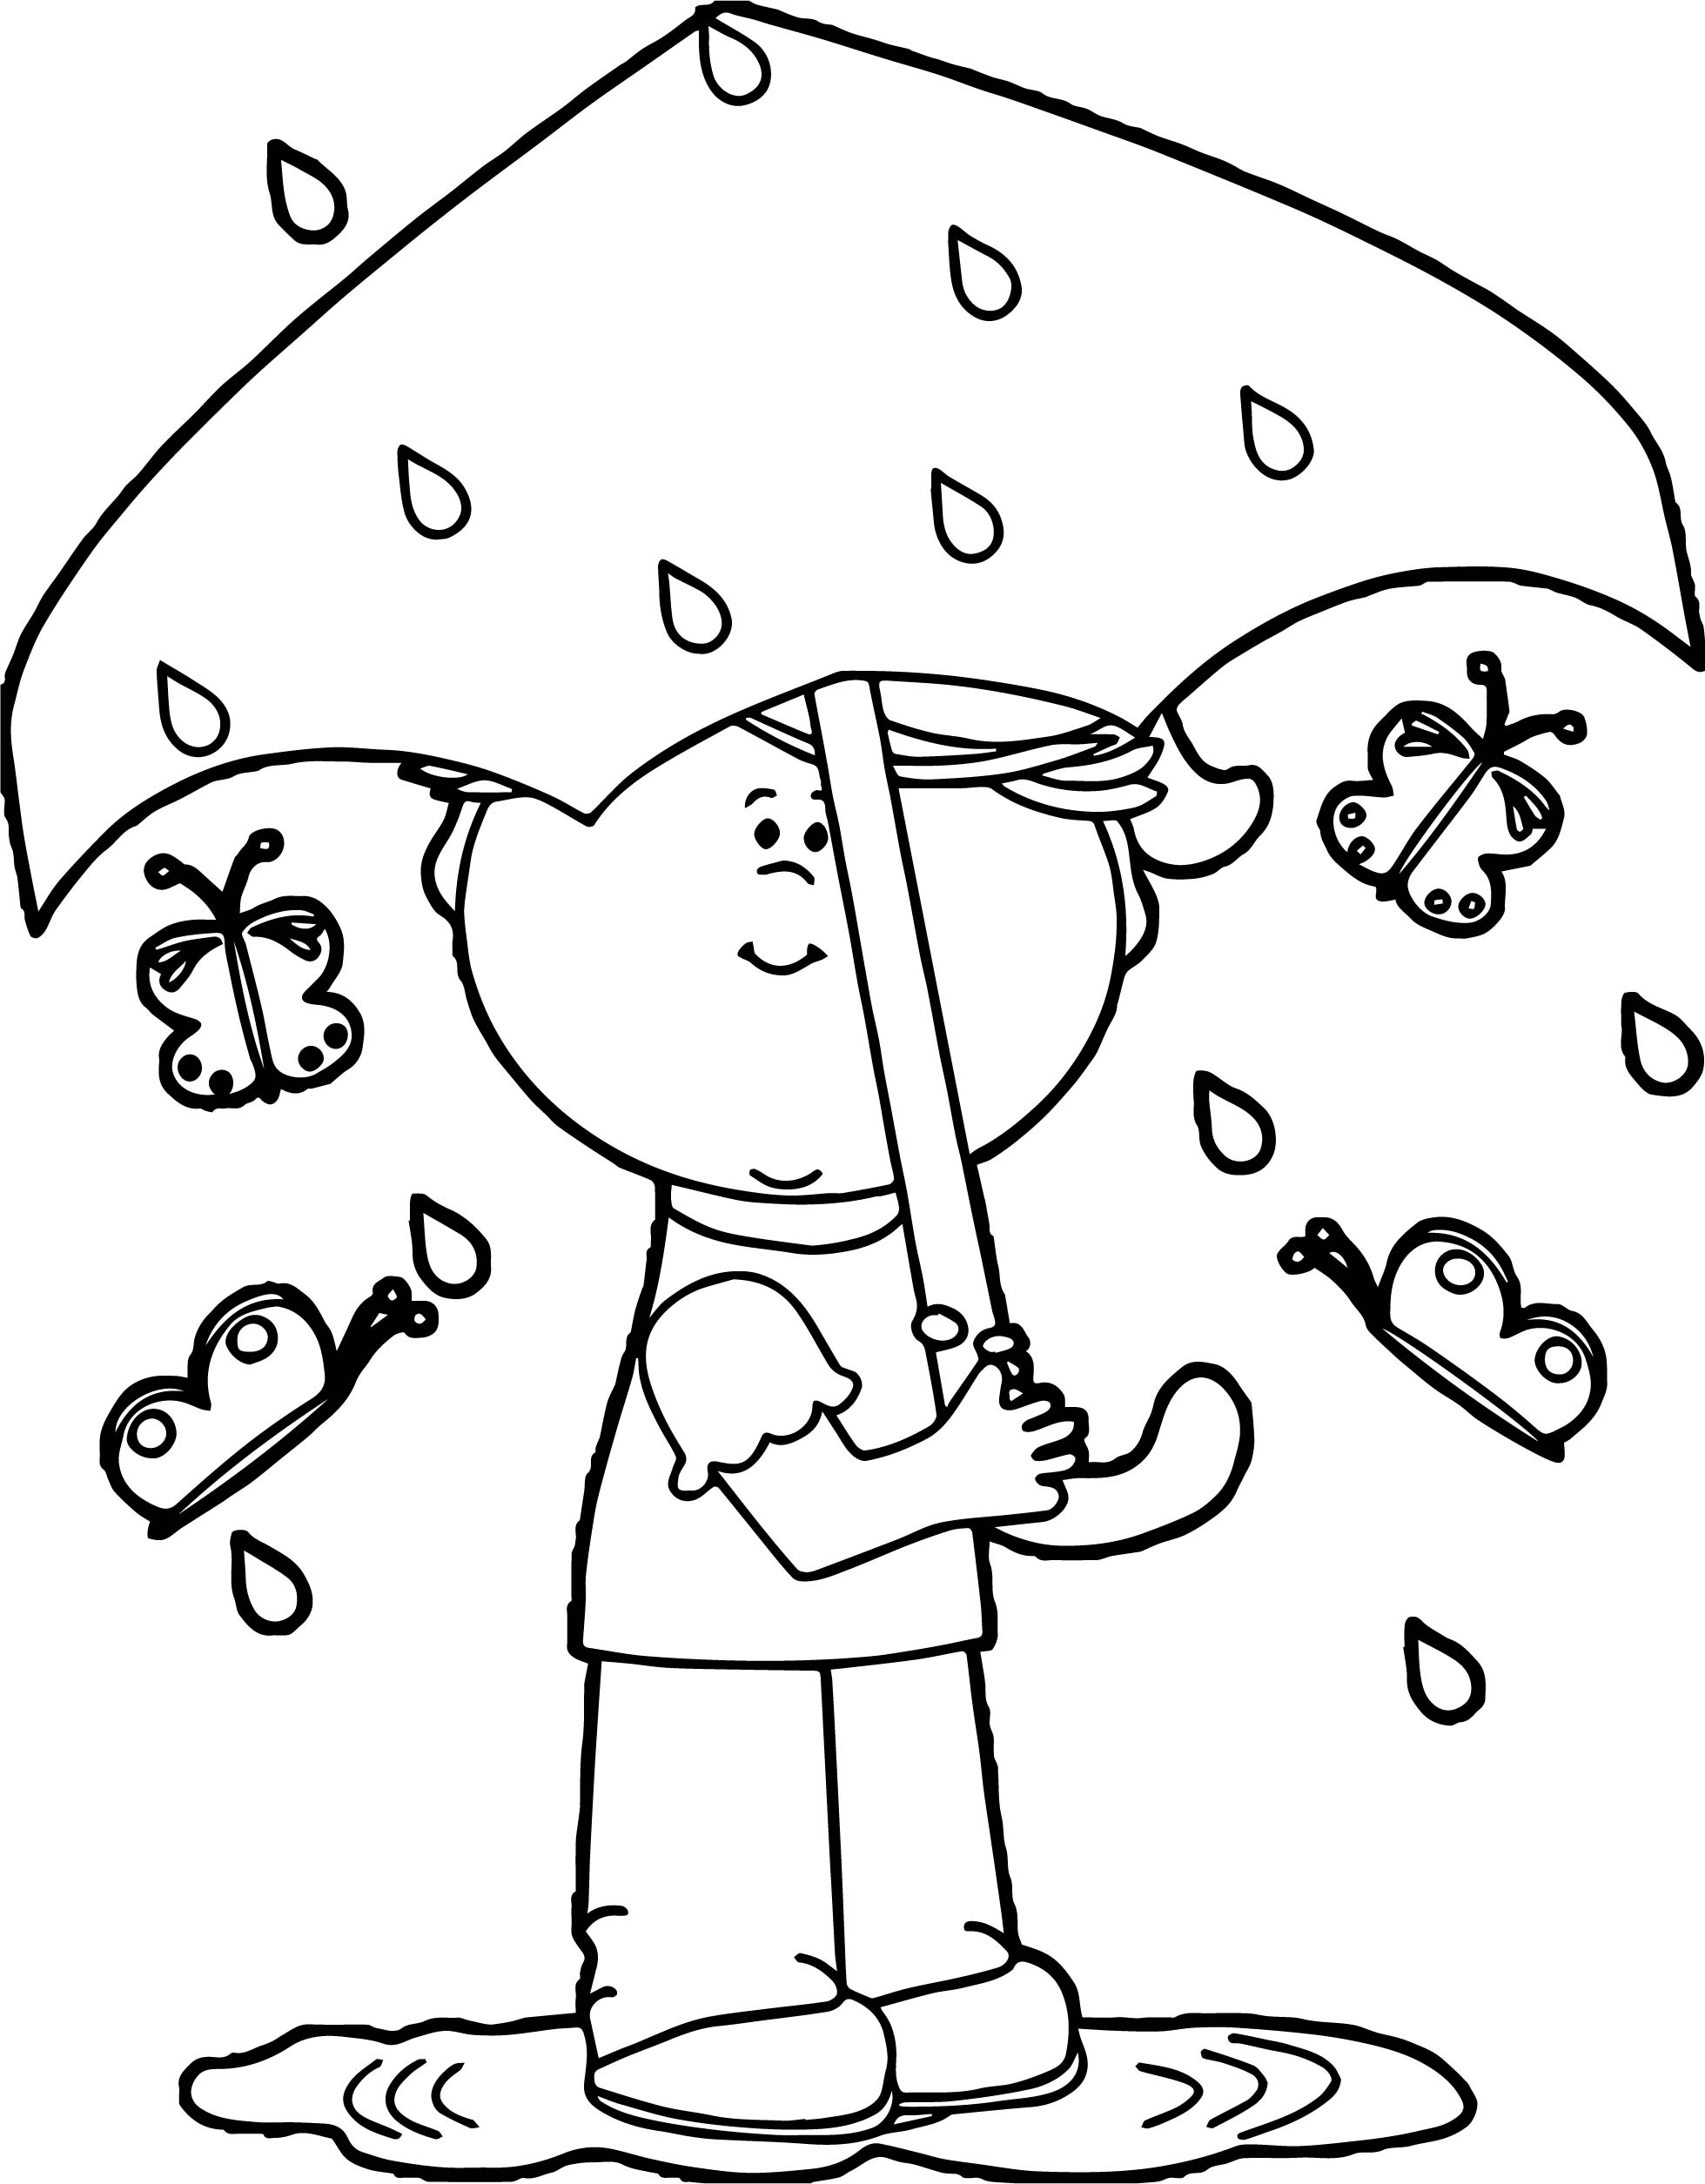 rain coloring page - rain falling coloring pages sketch templates